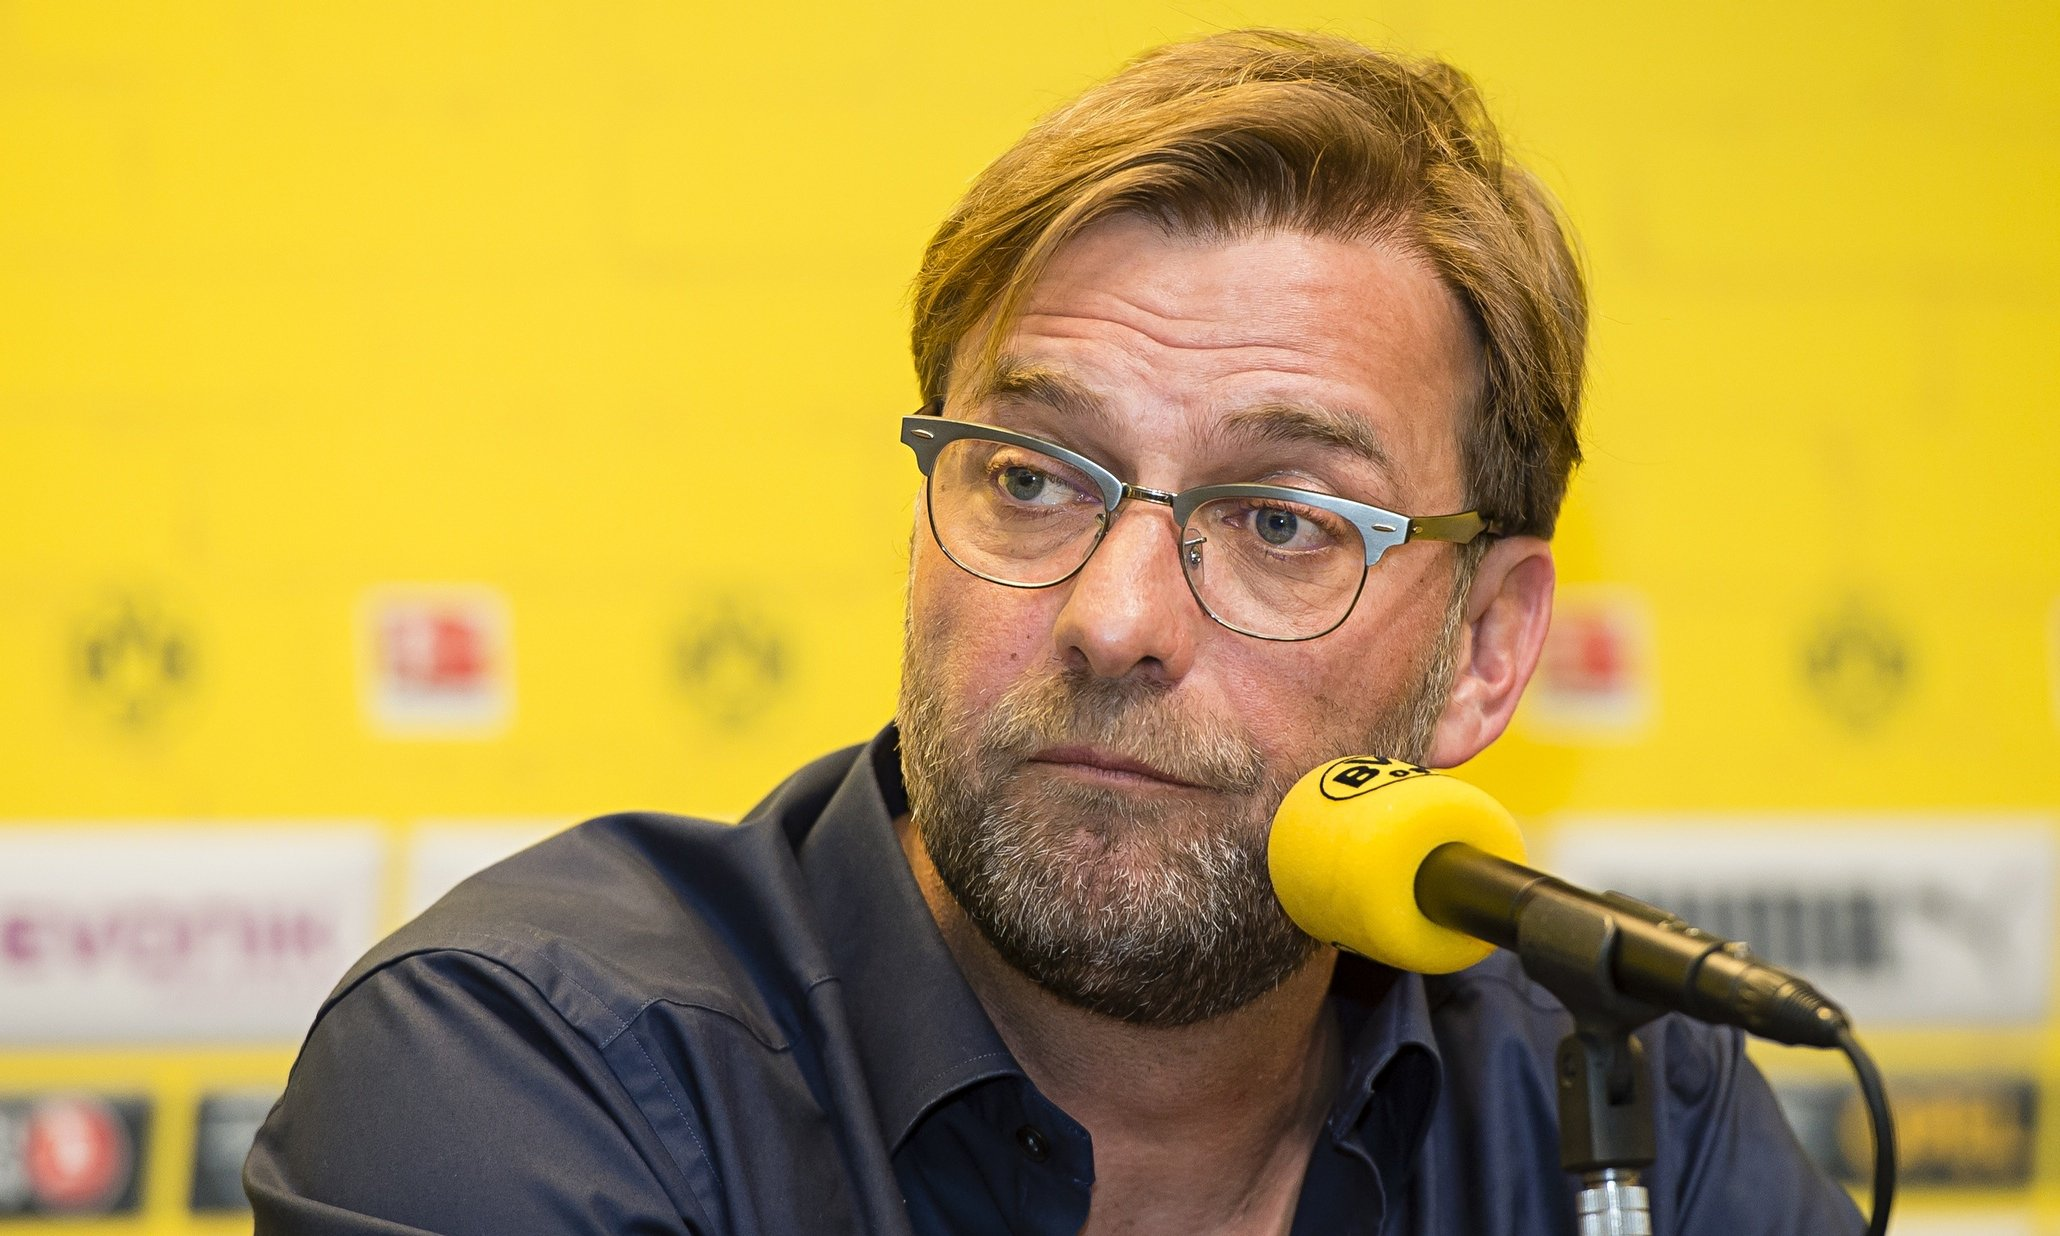 Jürgen Klopp, Borussia Dortmund press conference